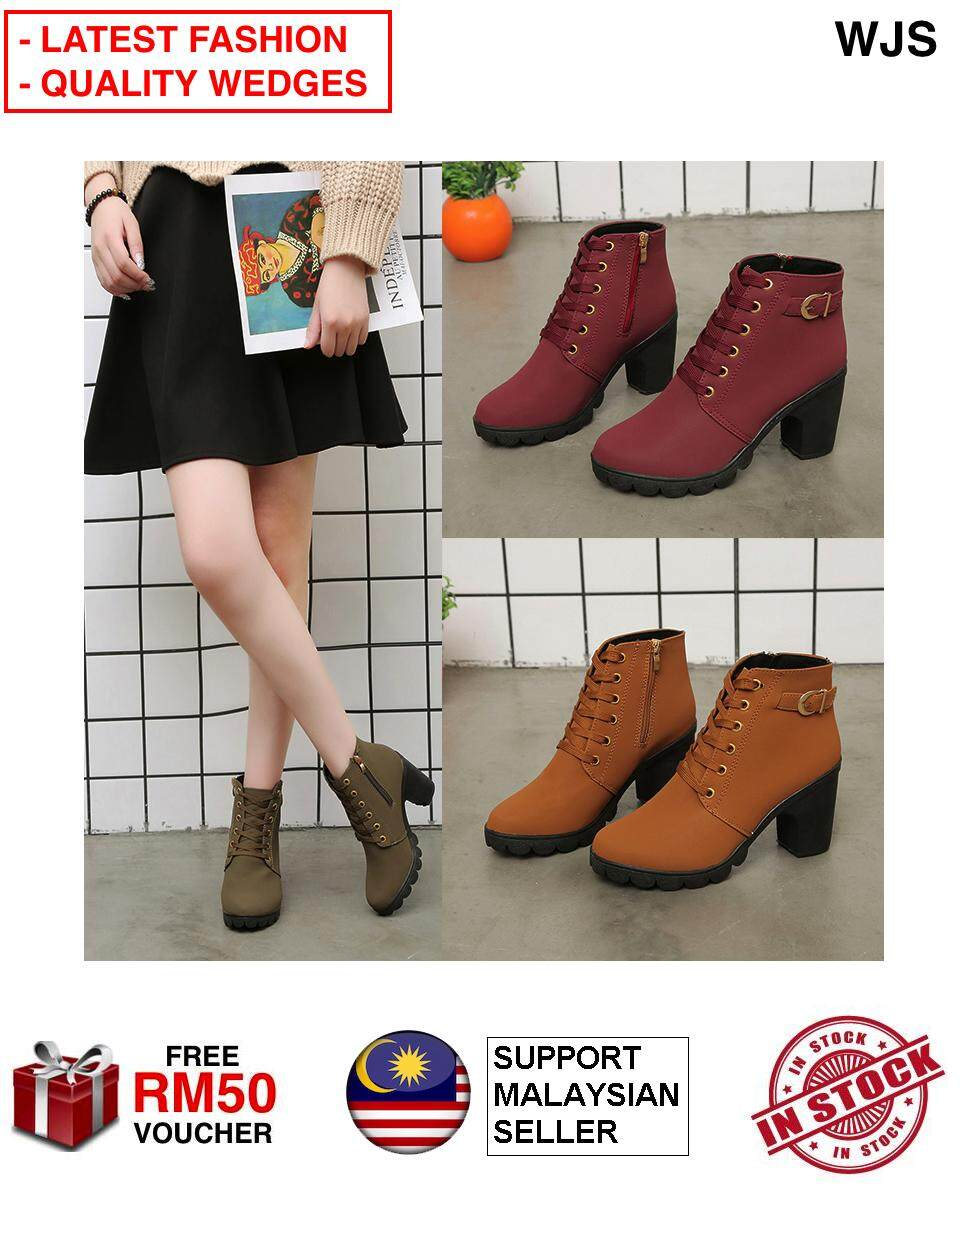 (LATEST FASHION) WJS Latest Korean Trend Winter Women Wedge Heel Boots Ladies Shoes Suede Boot BLACK BROWN COFFEE ARMY GREEN MAROON [FREE RM 50 VOUCHER]